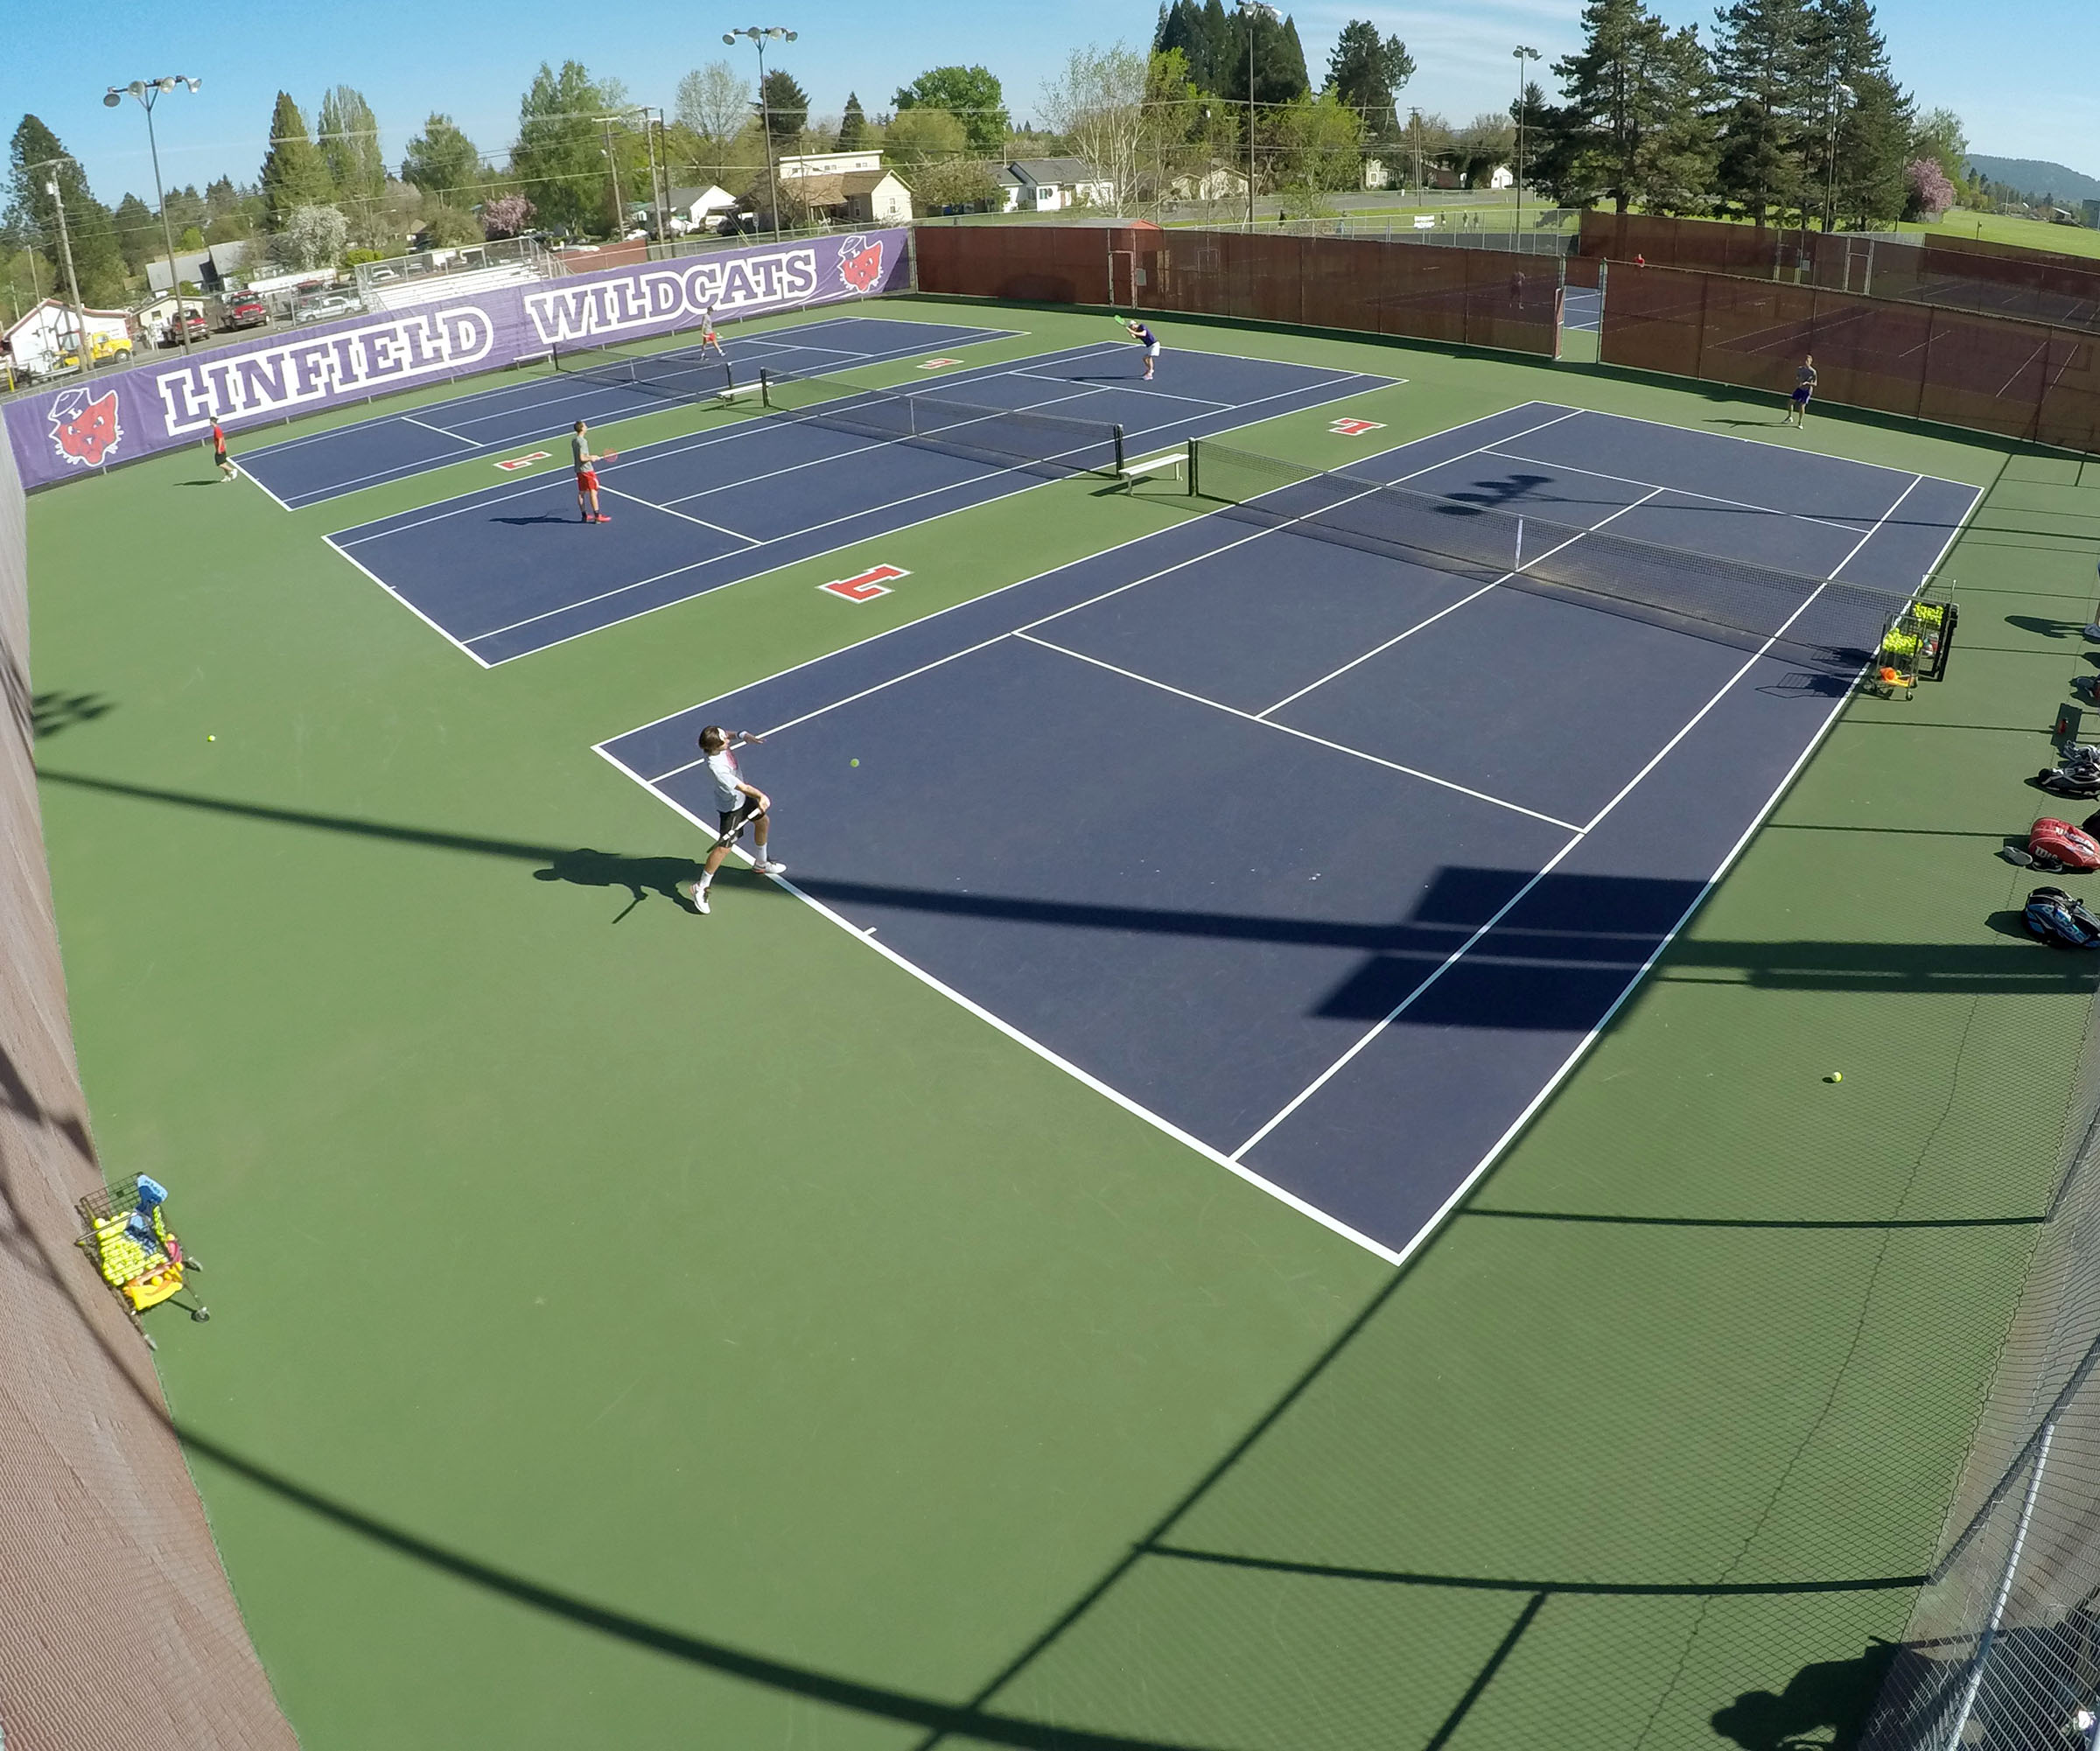 The Linfield College Tennis Courts